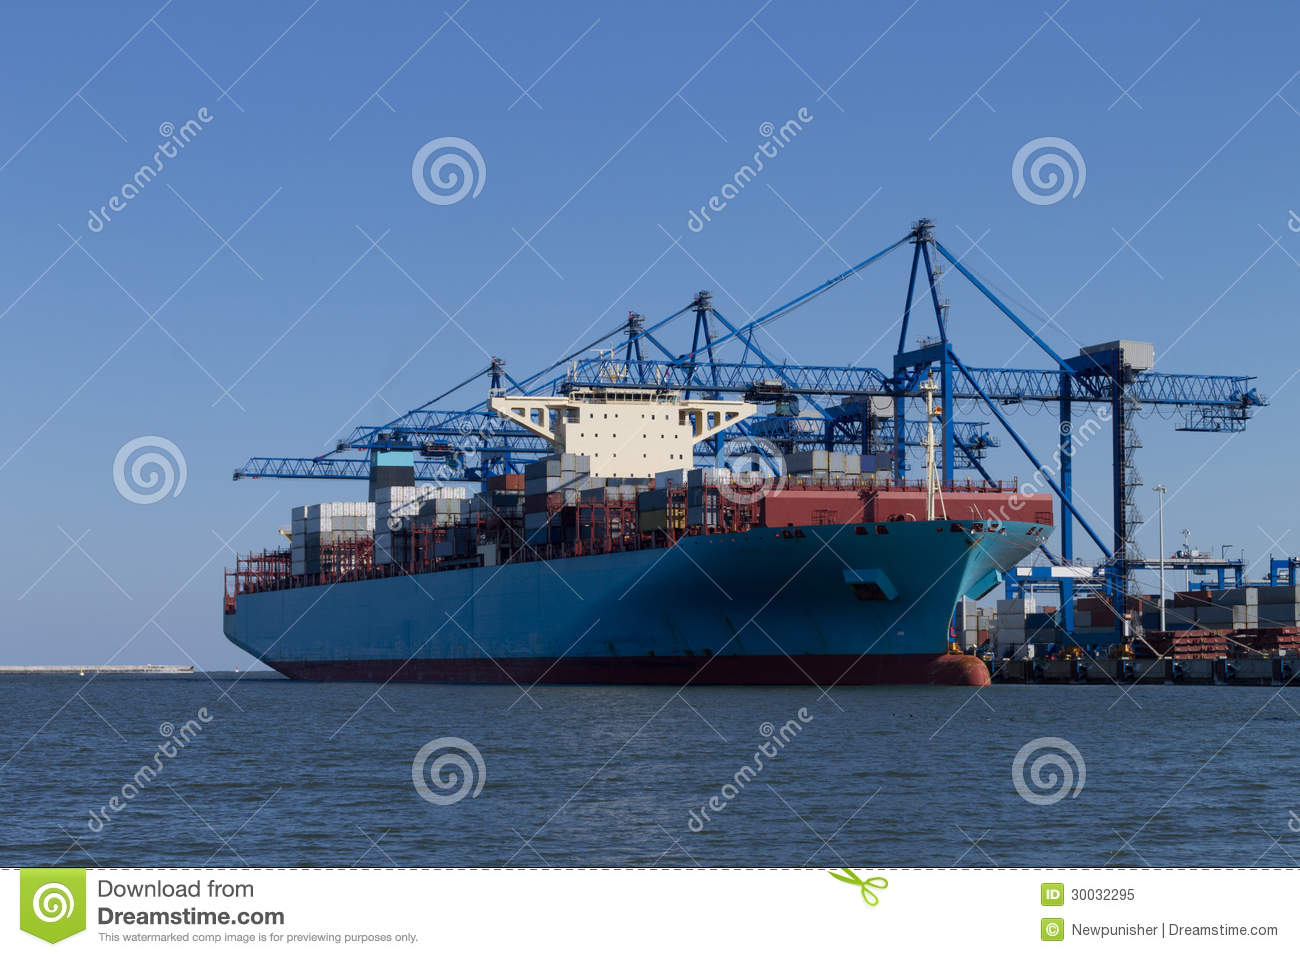 The container ship